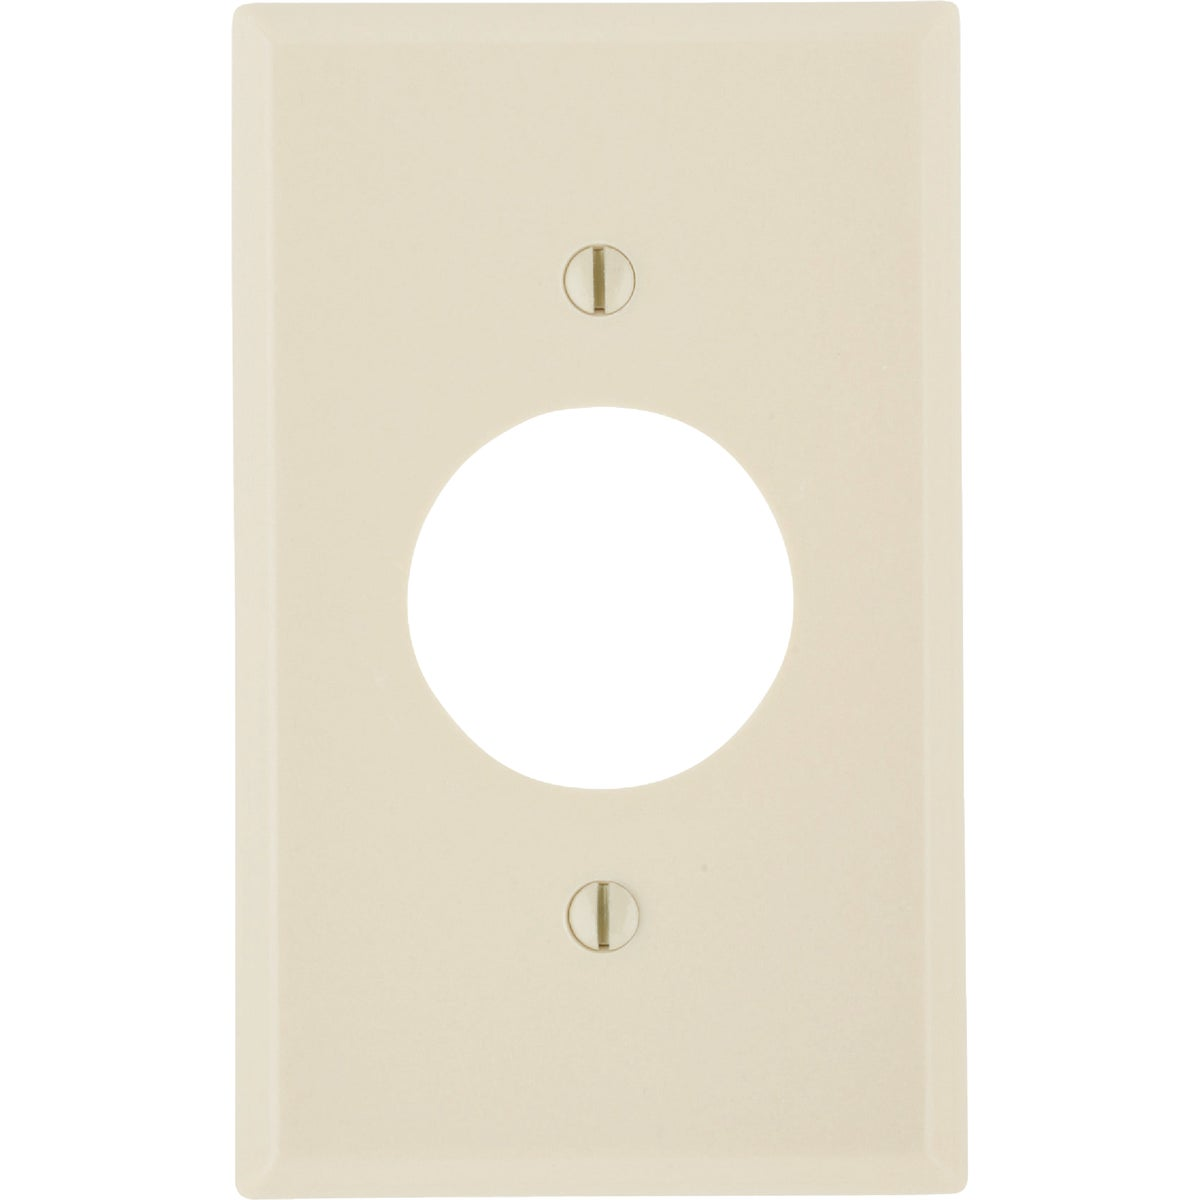 IV 1-OUTLET WALL PLATE